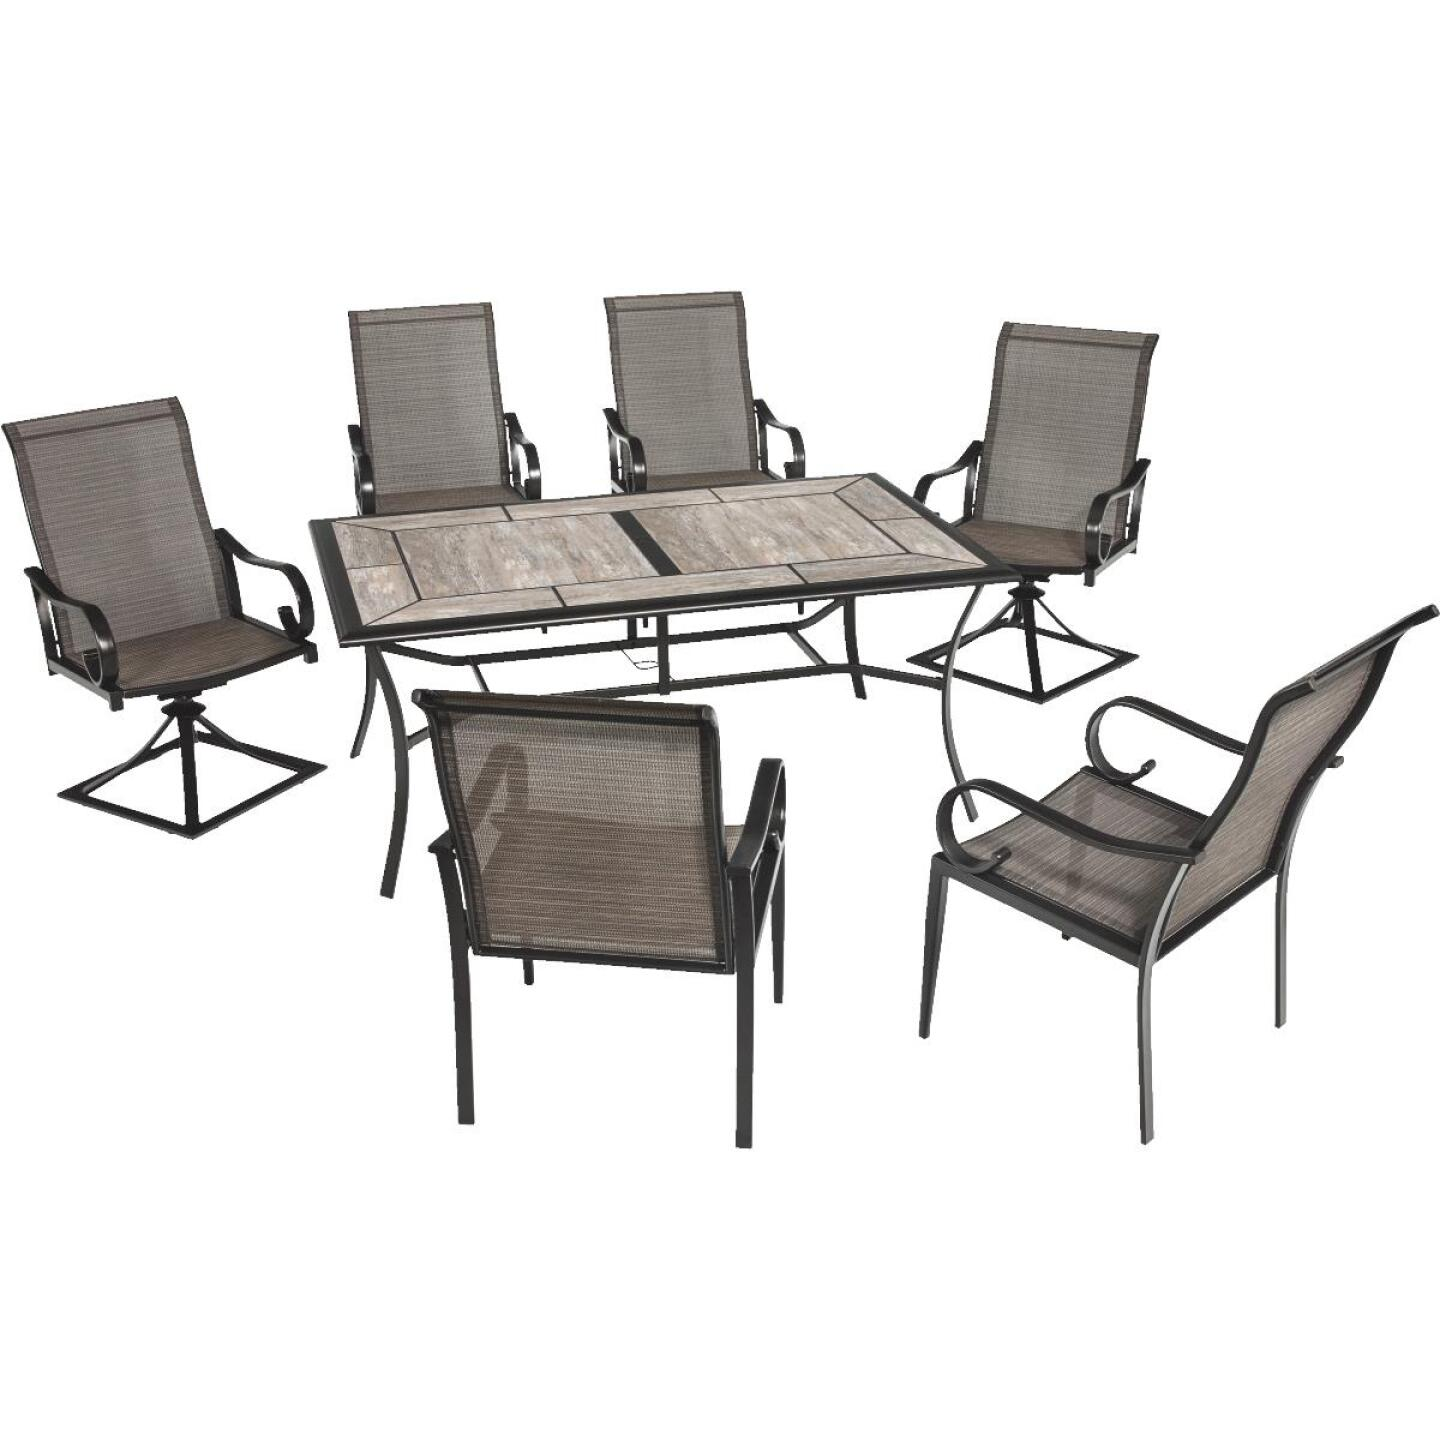 Outdoor Expressions Berkshire 7-Piece Dining Set Image 358